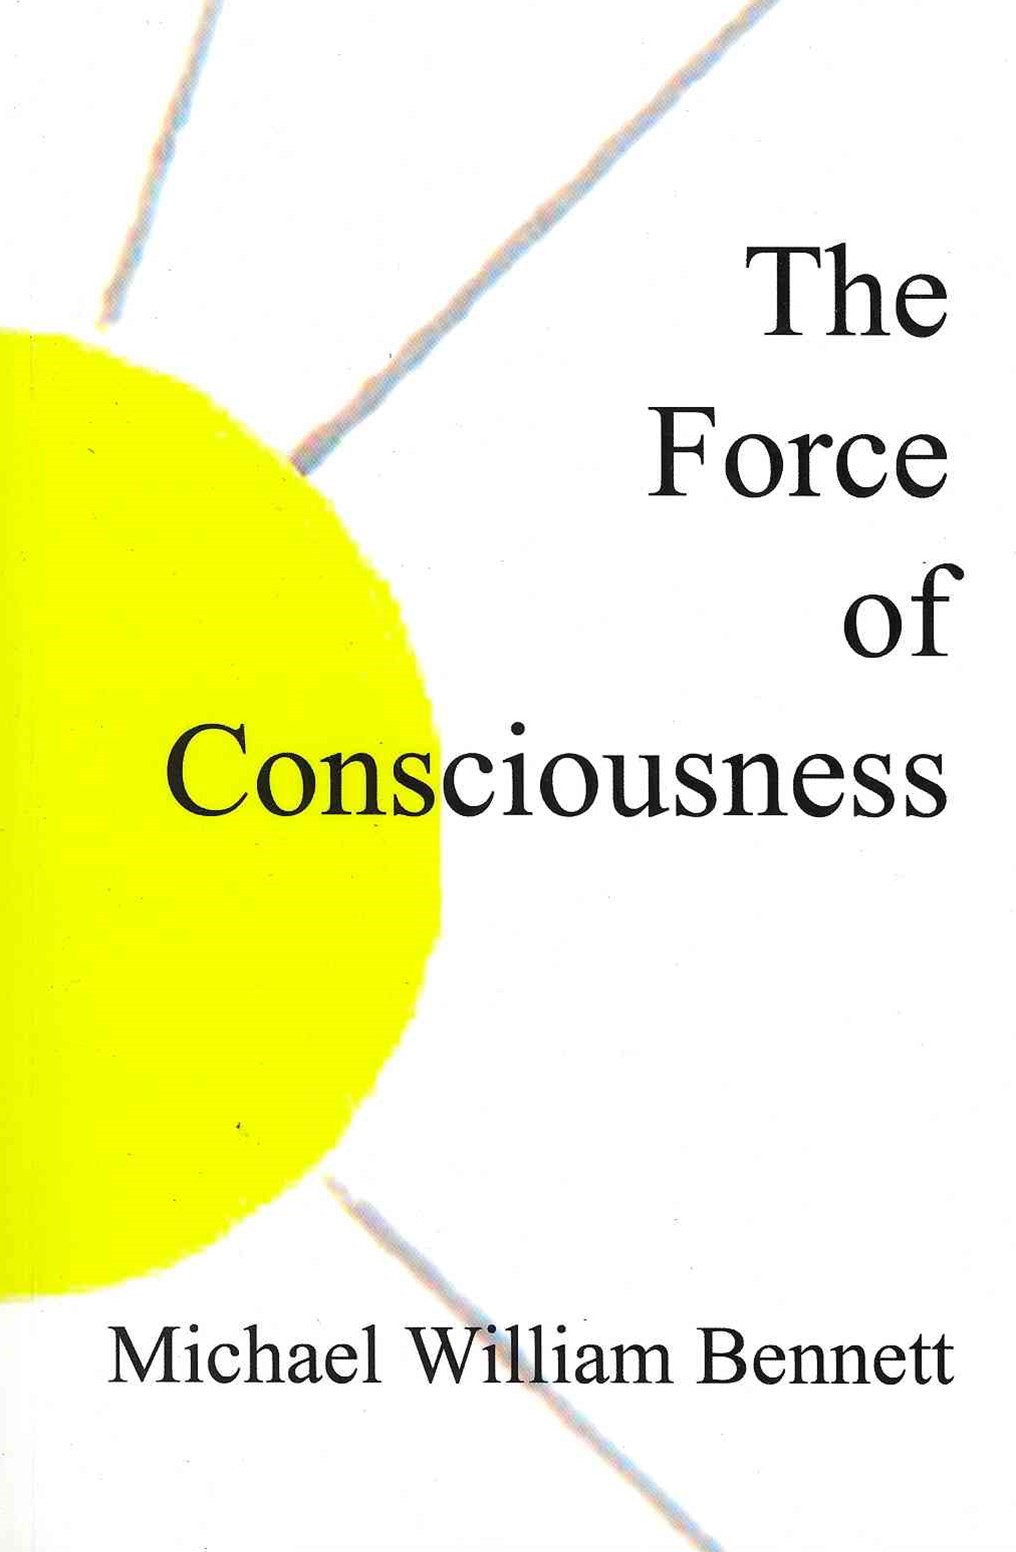 The Force of Consciousness